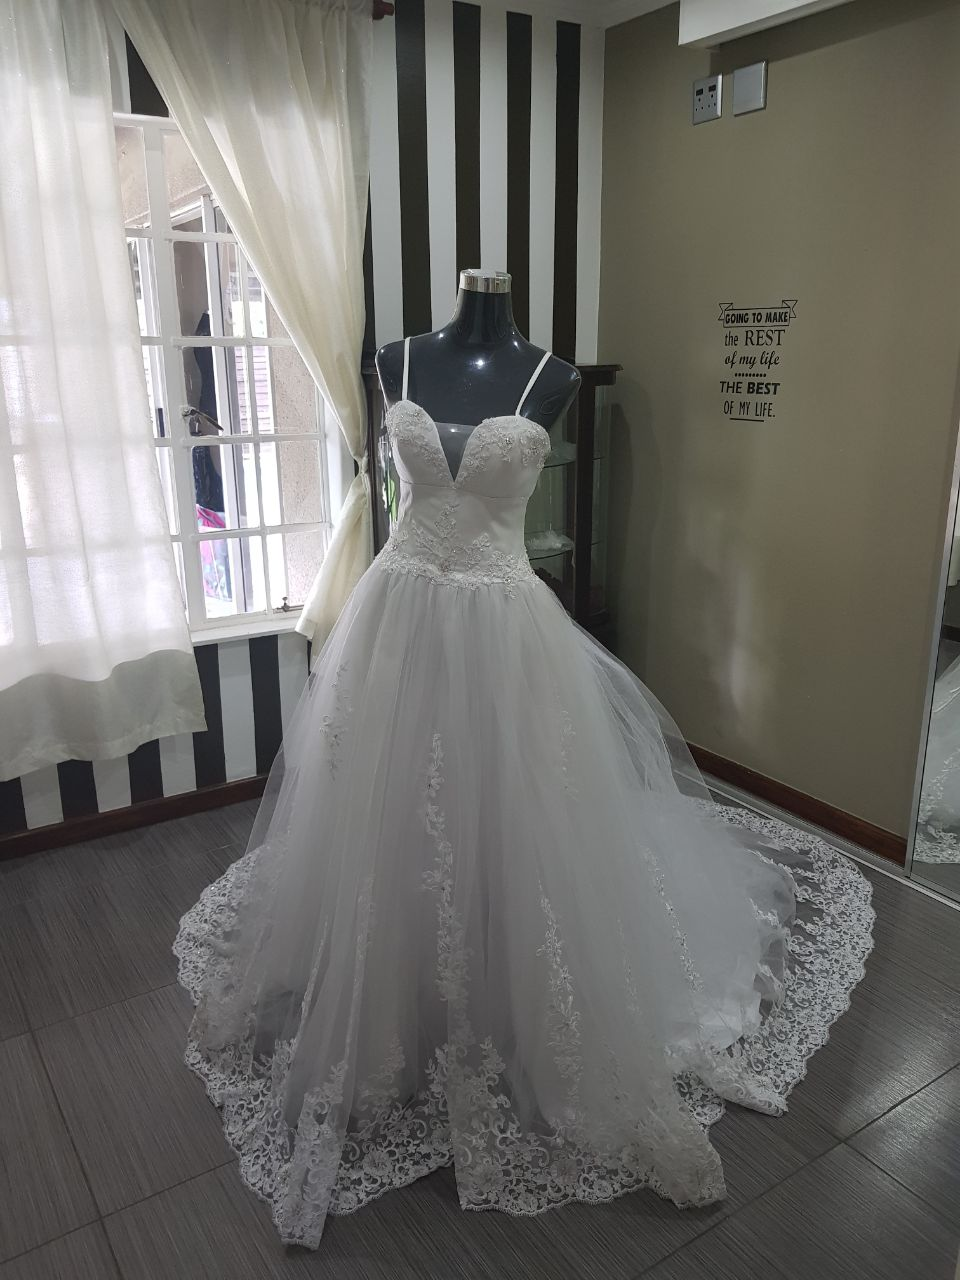 Wedding Dresses and Attire For Rent in East